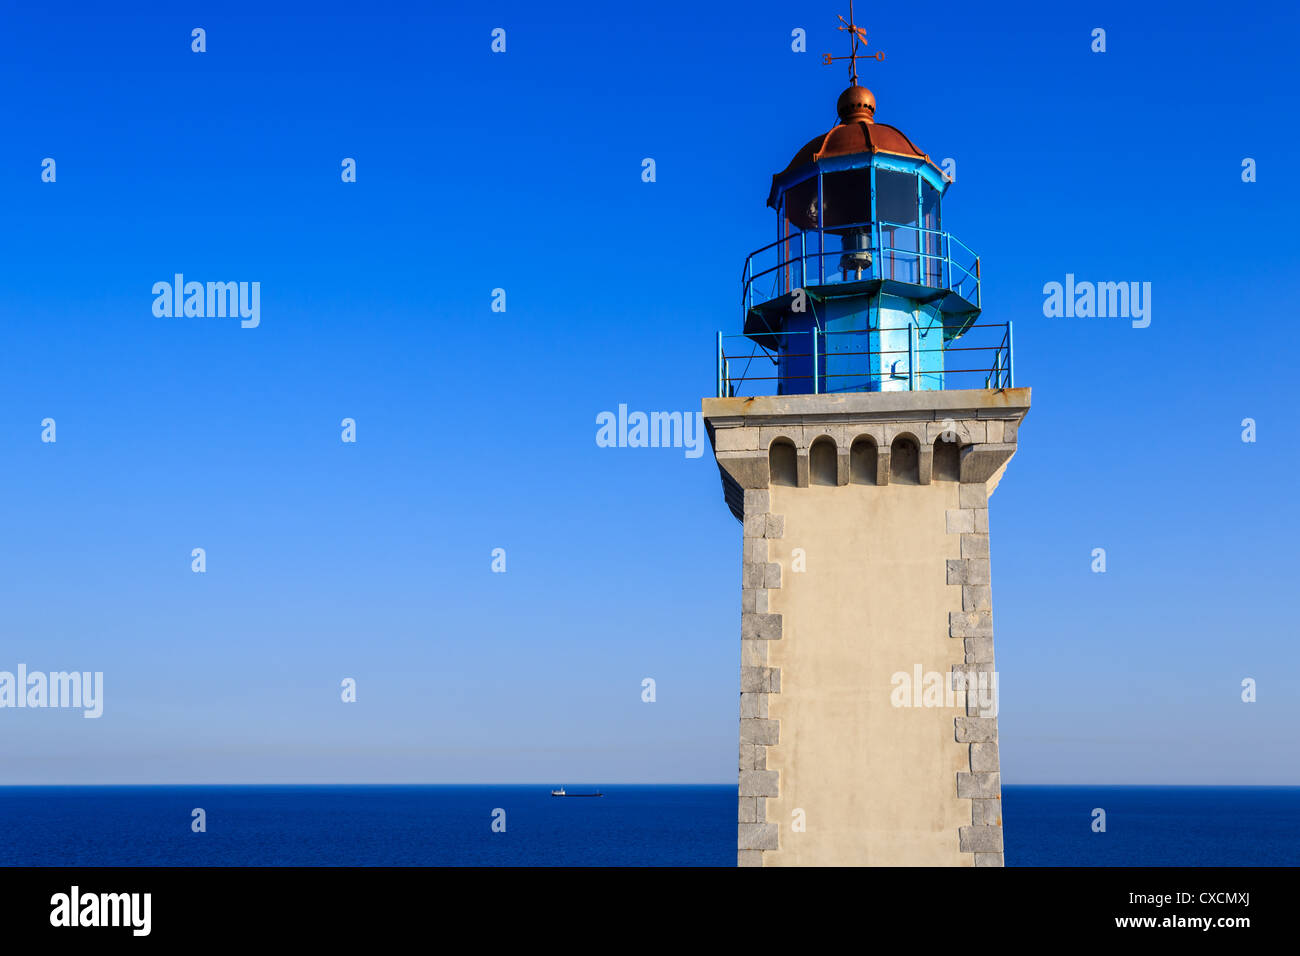 The lighthouse at Cape Tainaro, the southernmost point of continental East Europe, Peloponnese, Greece - Stock Image